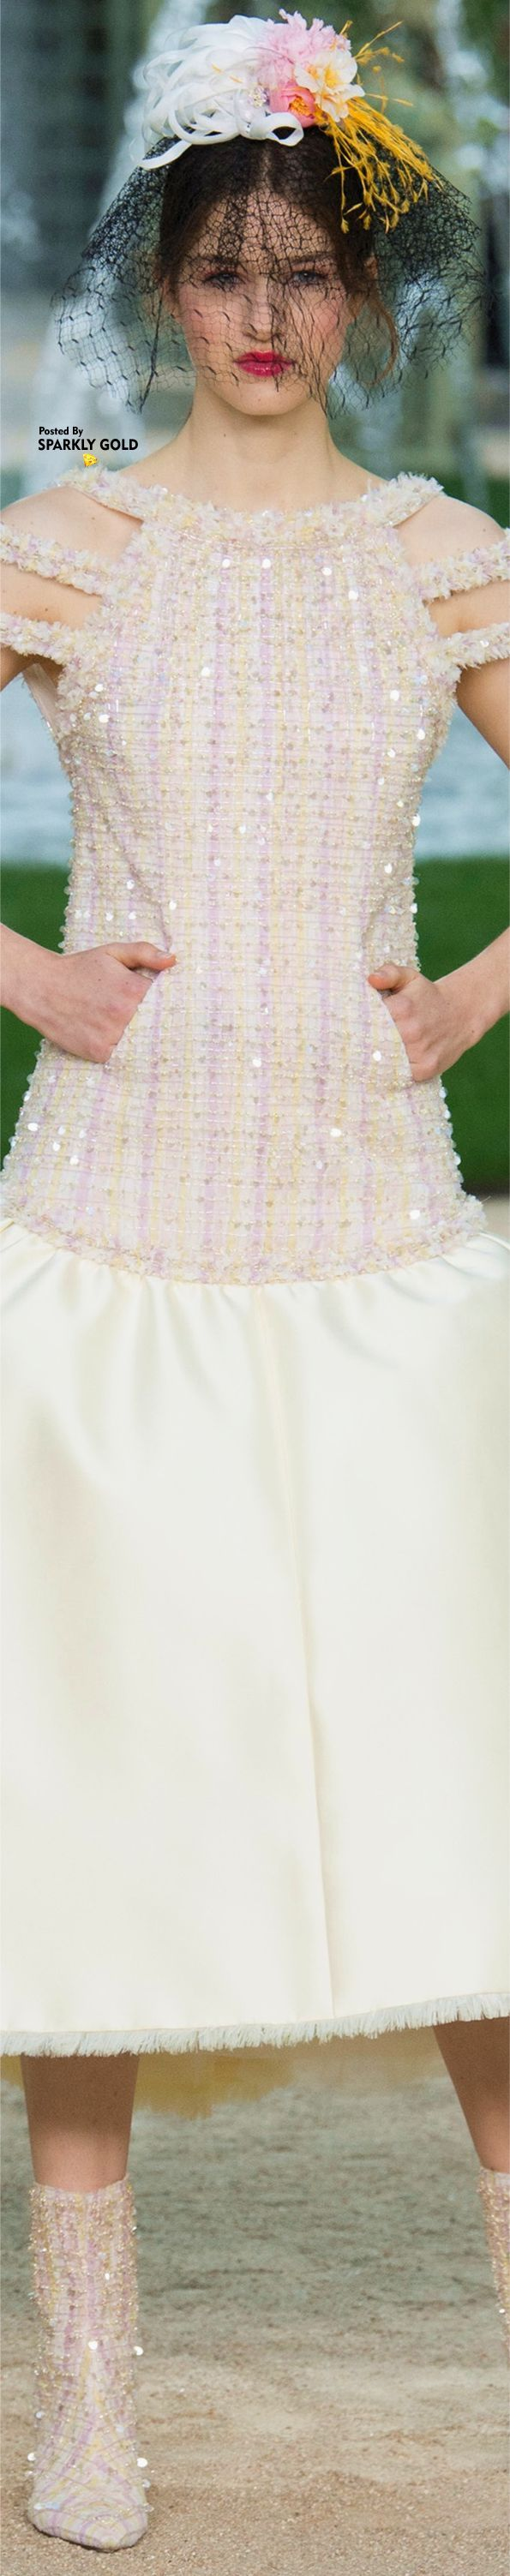 Chanel spring couture fashionchanel evening from